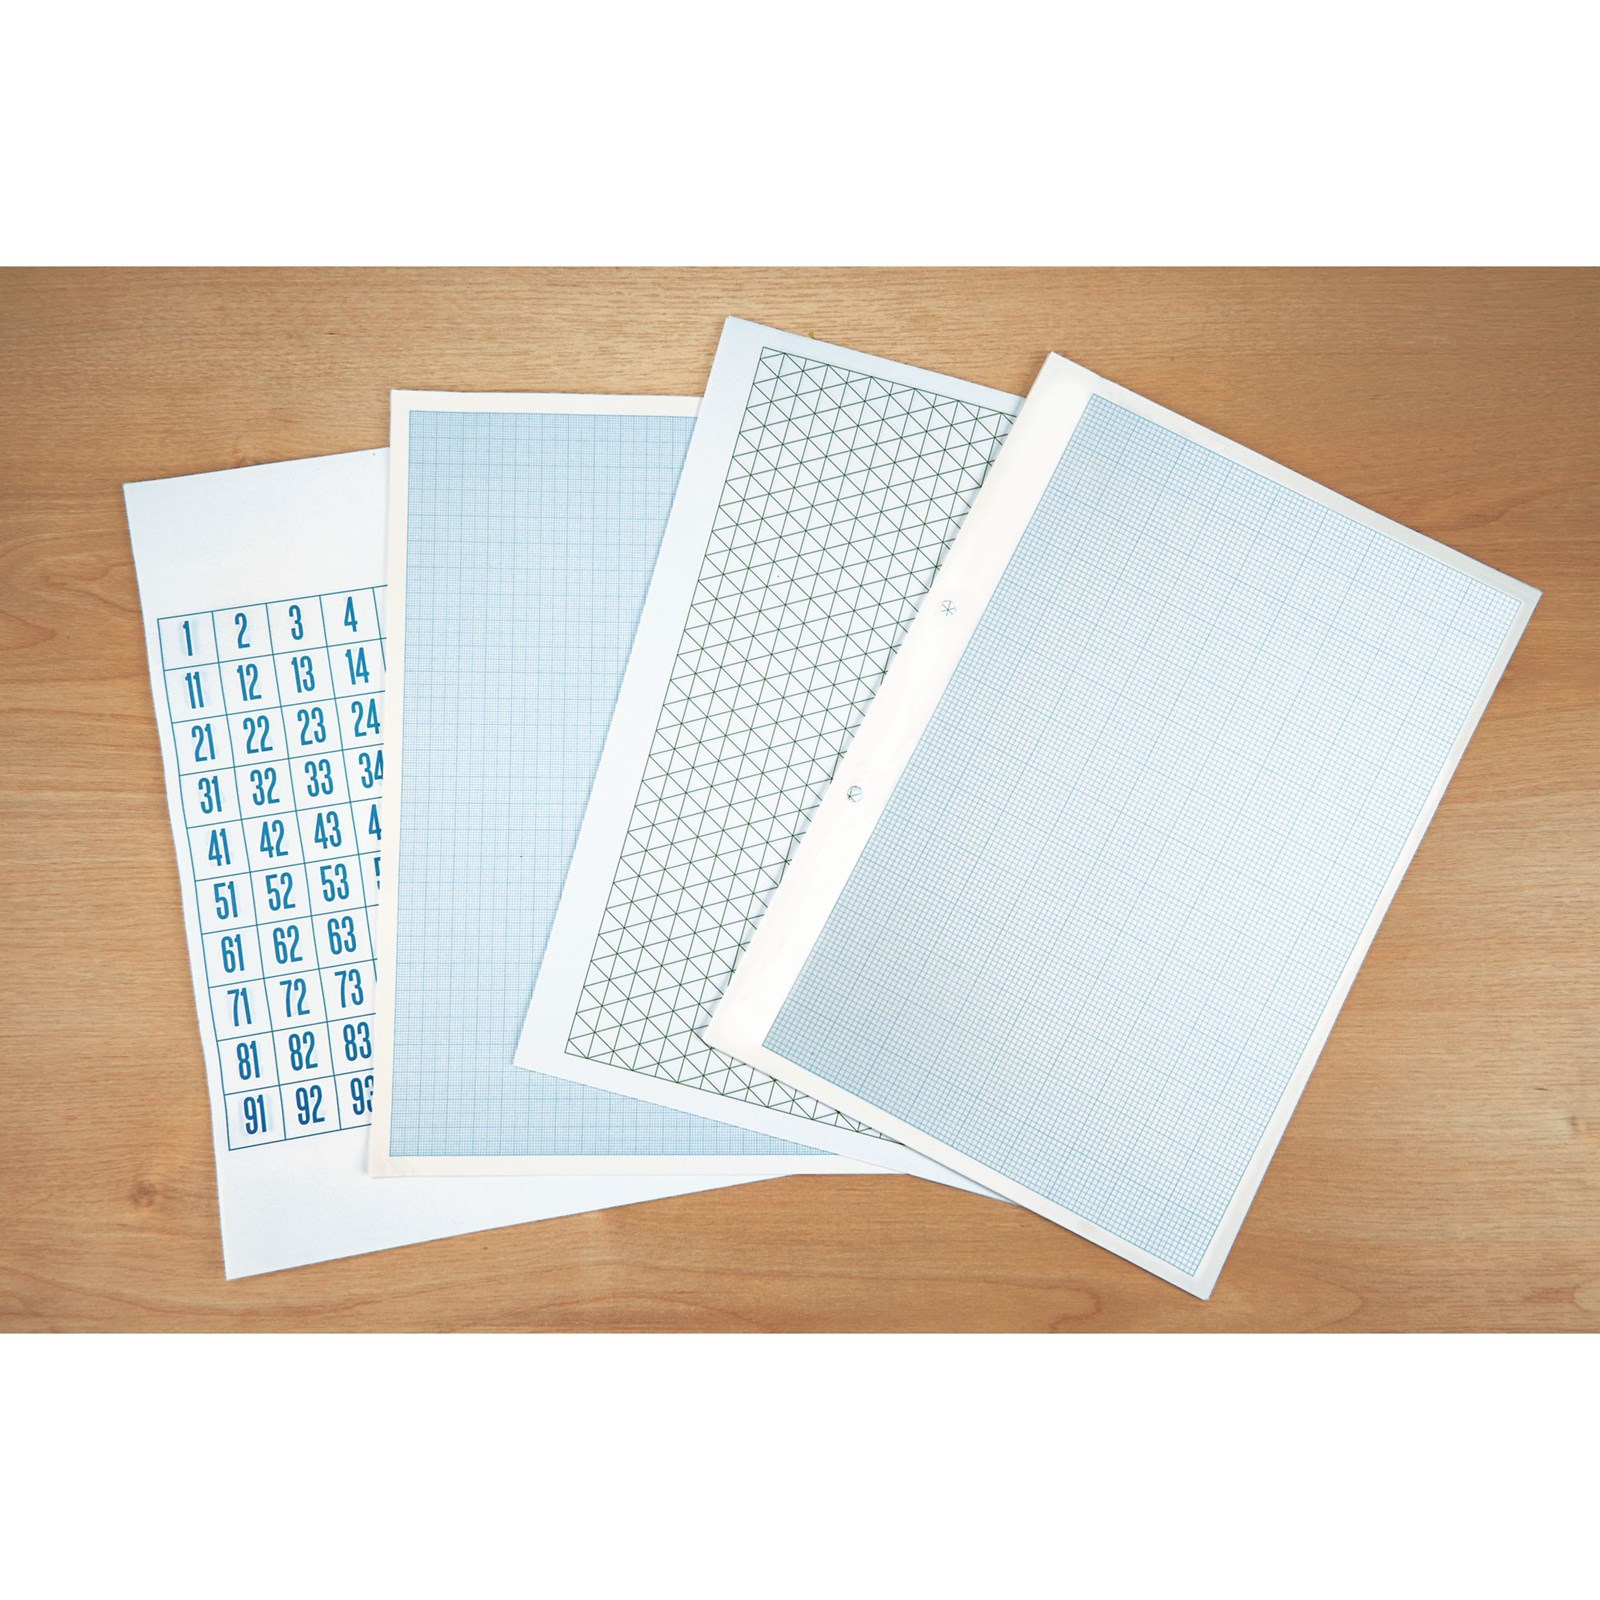 A4 Maths Paper, 2, 10 and 20mm Squared, Unpunched - 1 Ream